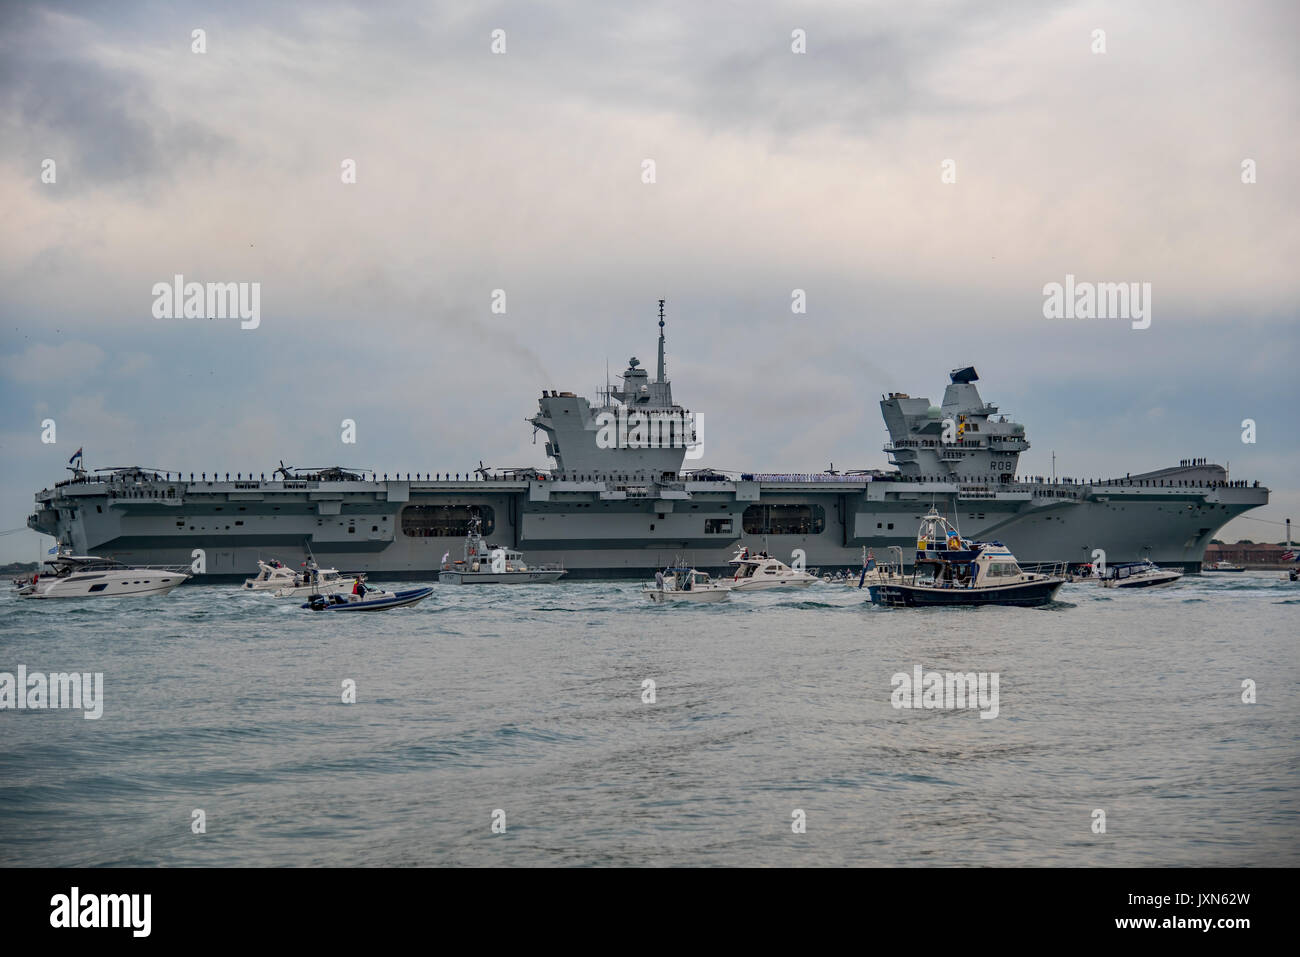 The British Royal Navy Aircraft Carrier, HMS Queen Elizabeth (R08) first arrival by the warship at Portsmouth Naval Base, UK early (am) on 16/8/17. - Stock Image